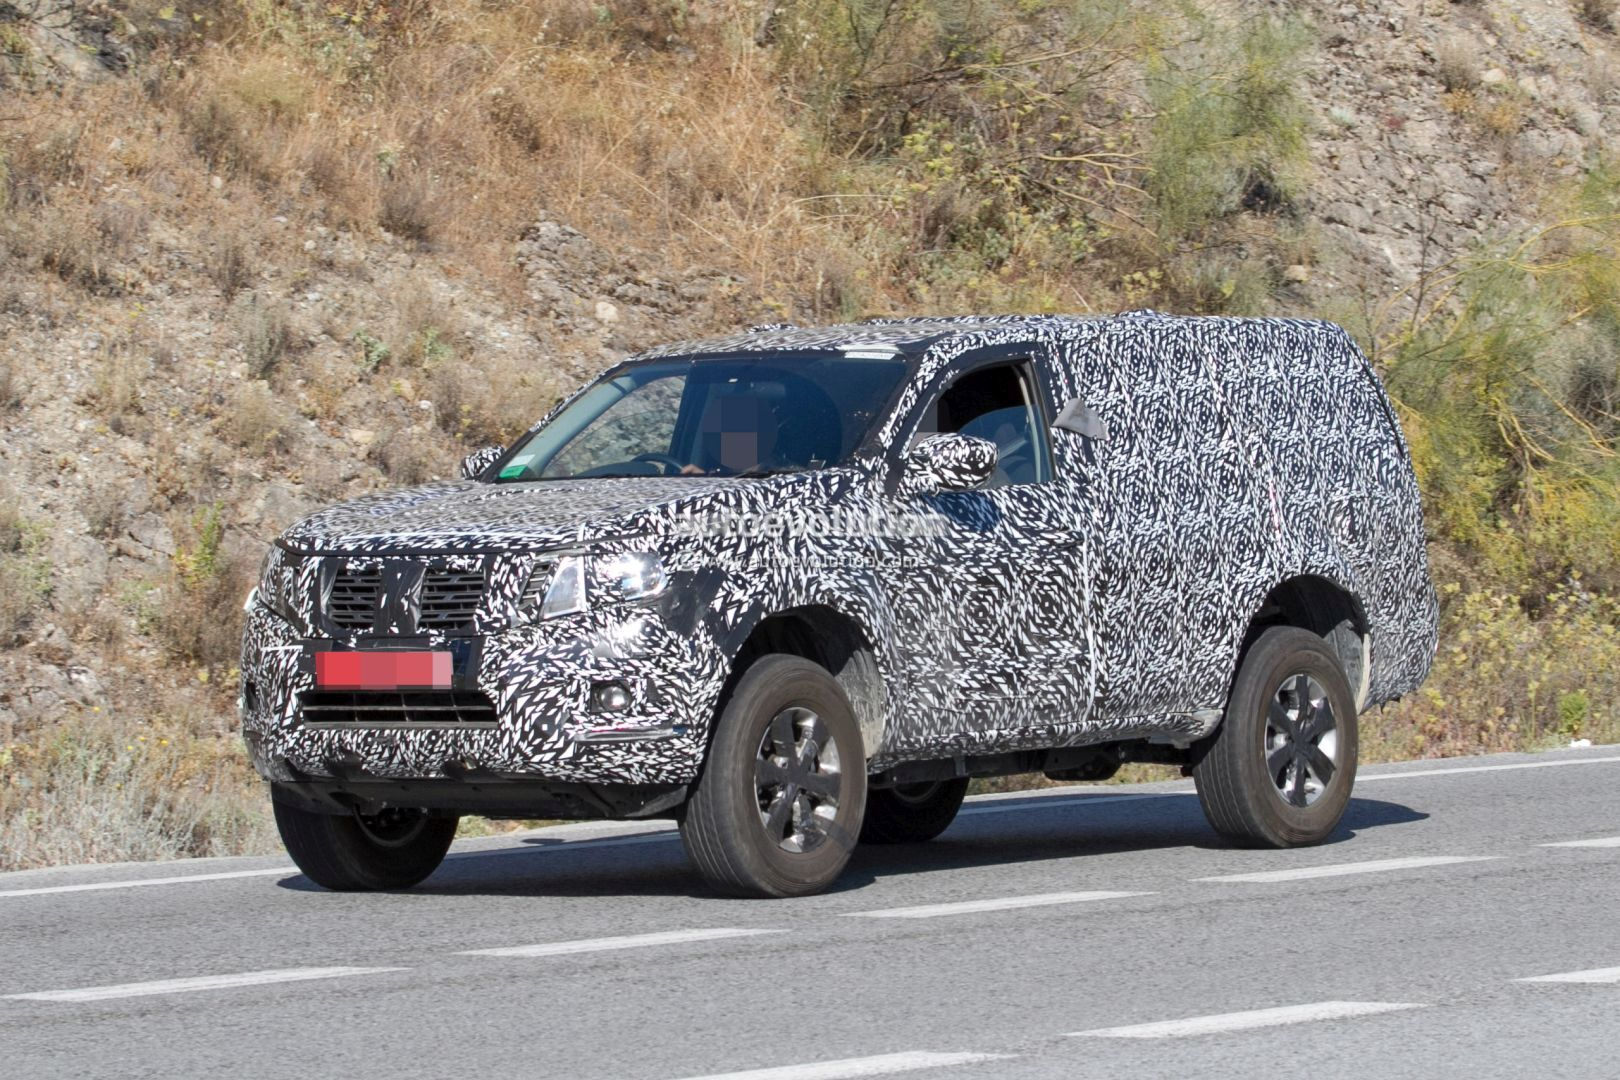 Next gen 2019 nissan pathfinder spied shows radical front end design change autoevolution